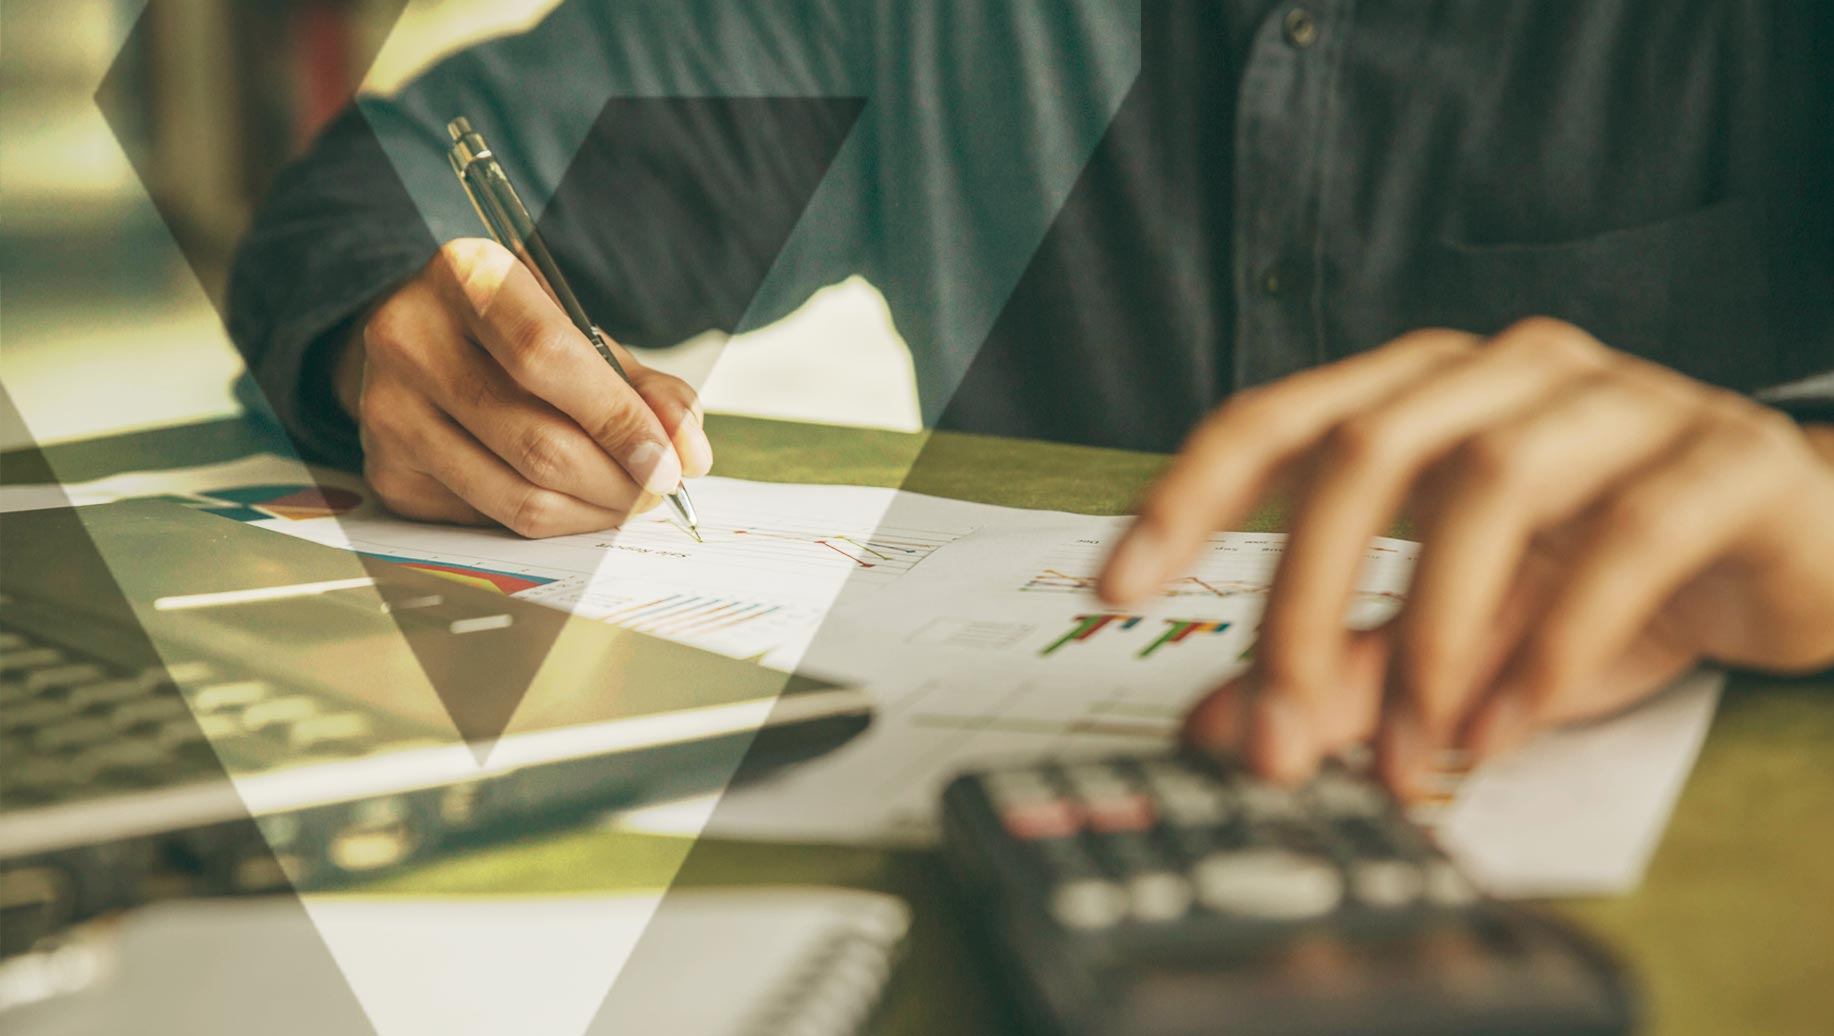 5 Transfer Pricing Methods: Approaches, Benefits & Risks